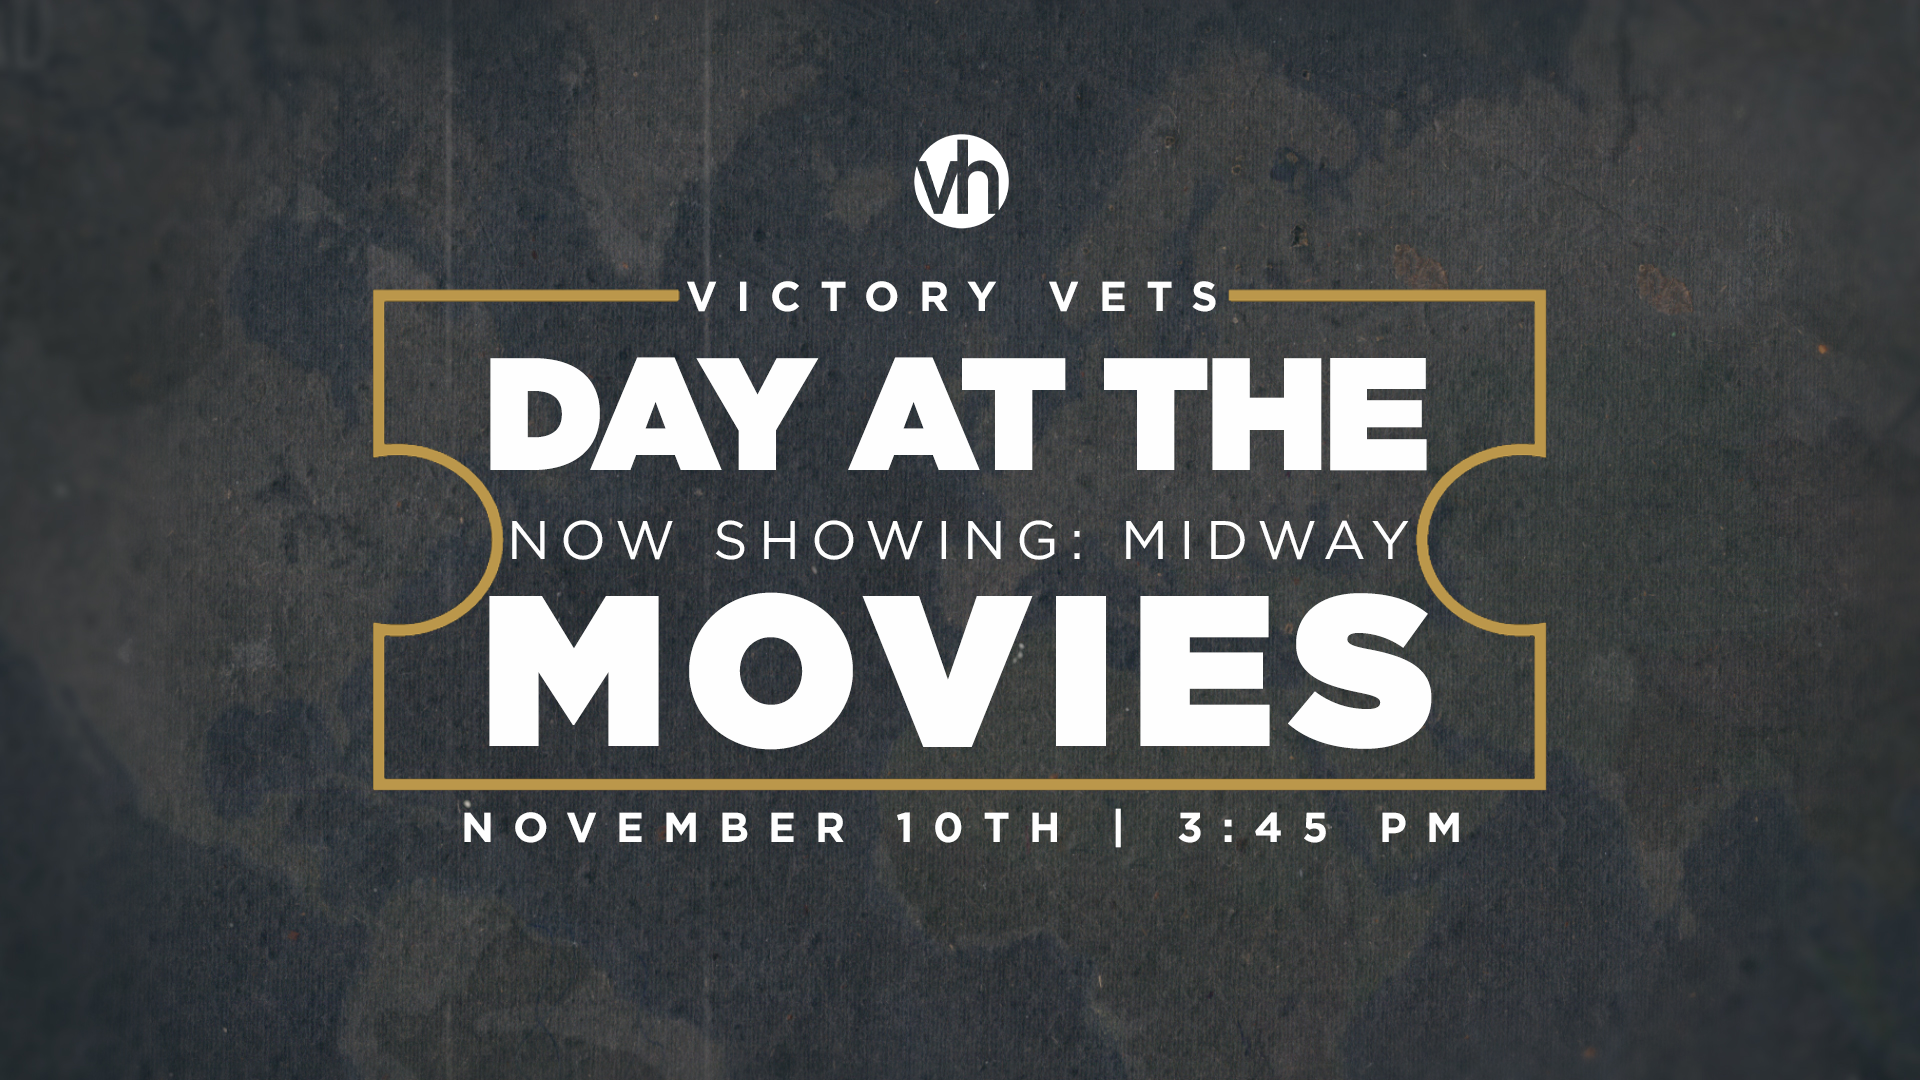 Victory vets movie.png